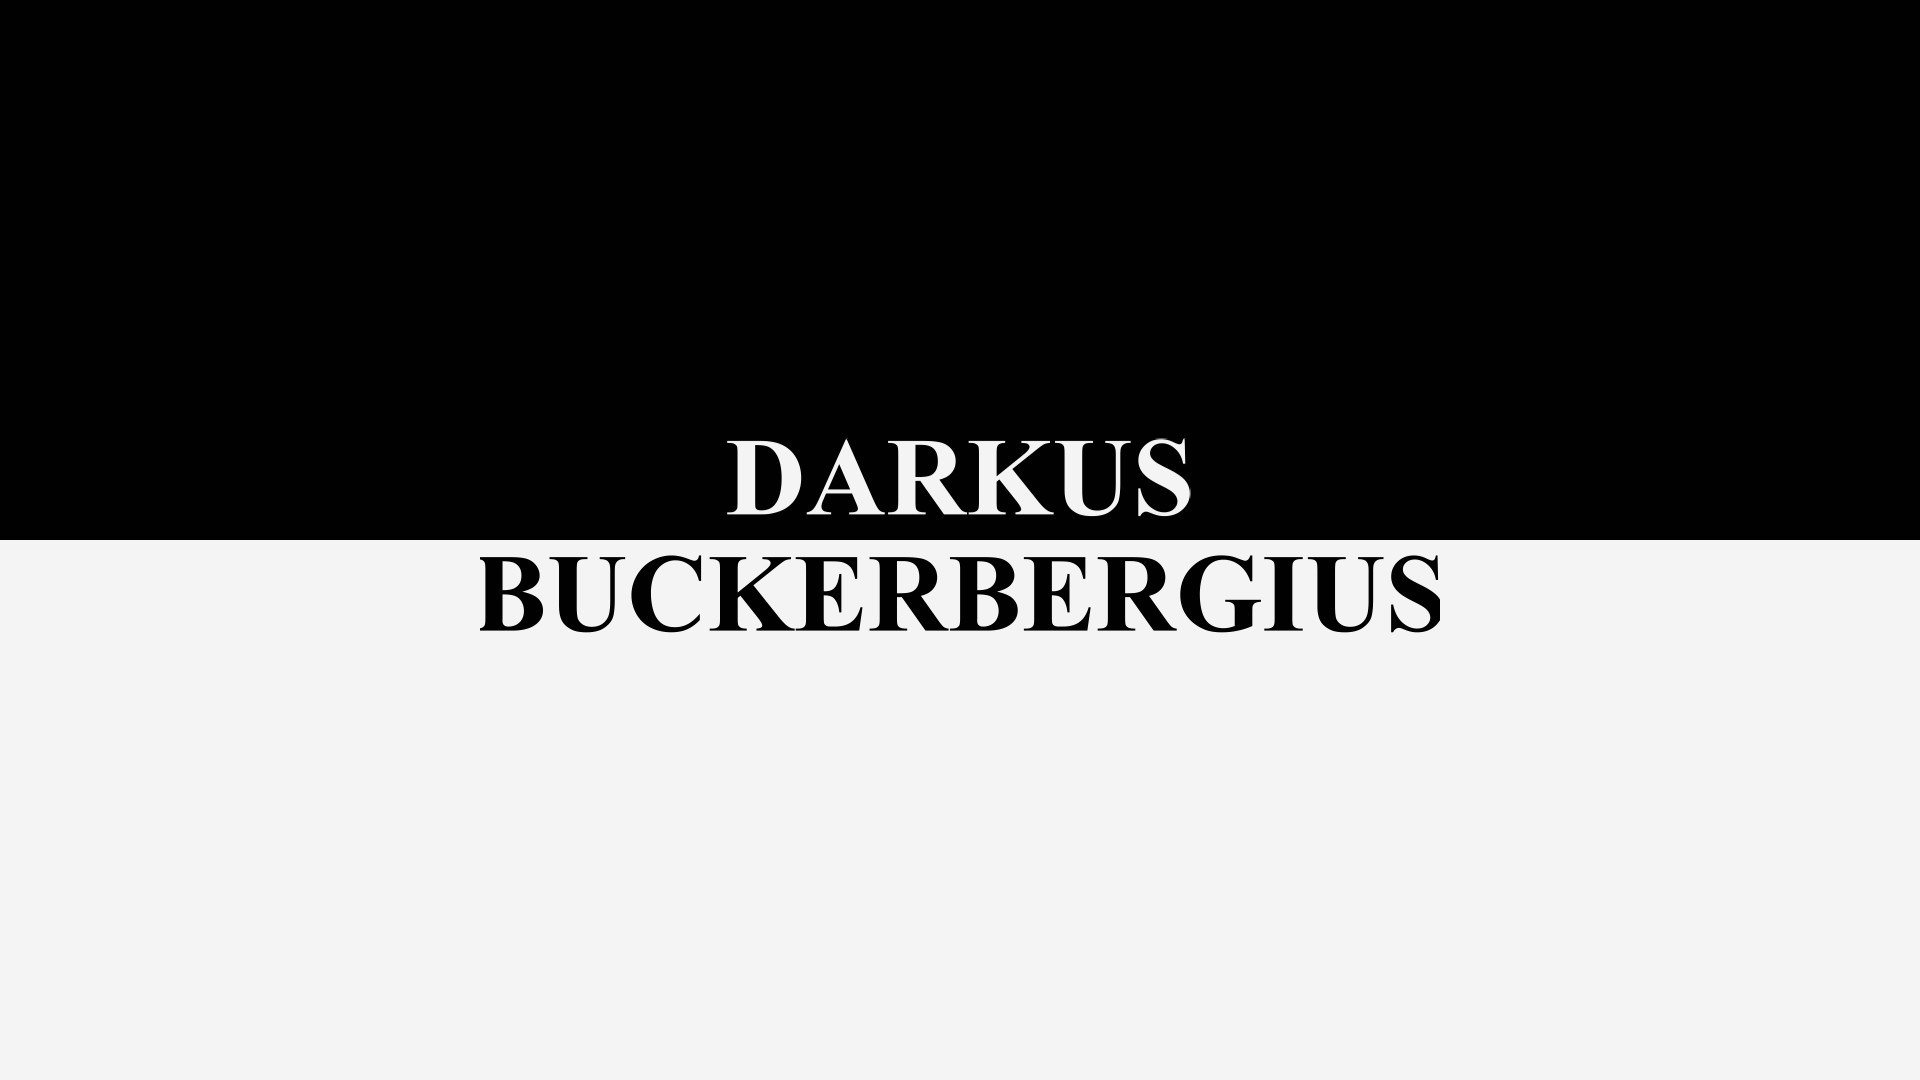 Darkus Buckerbergius – The Trial Begins